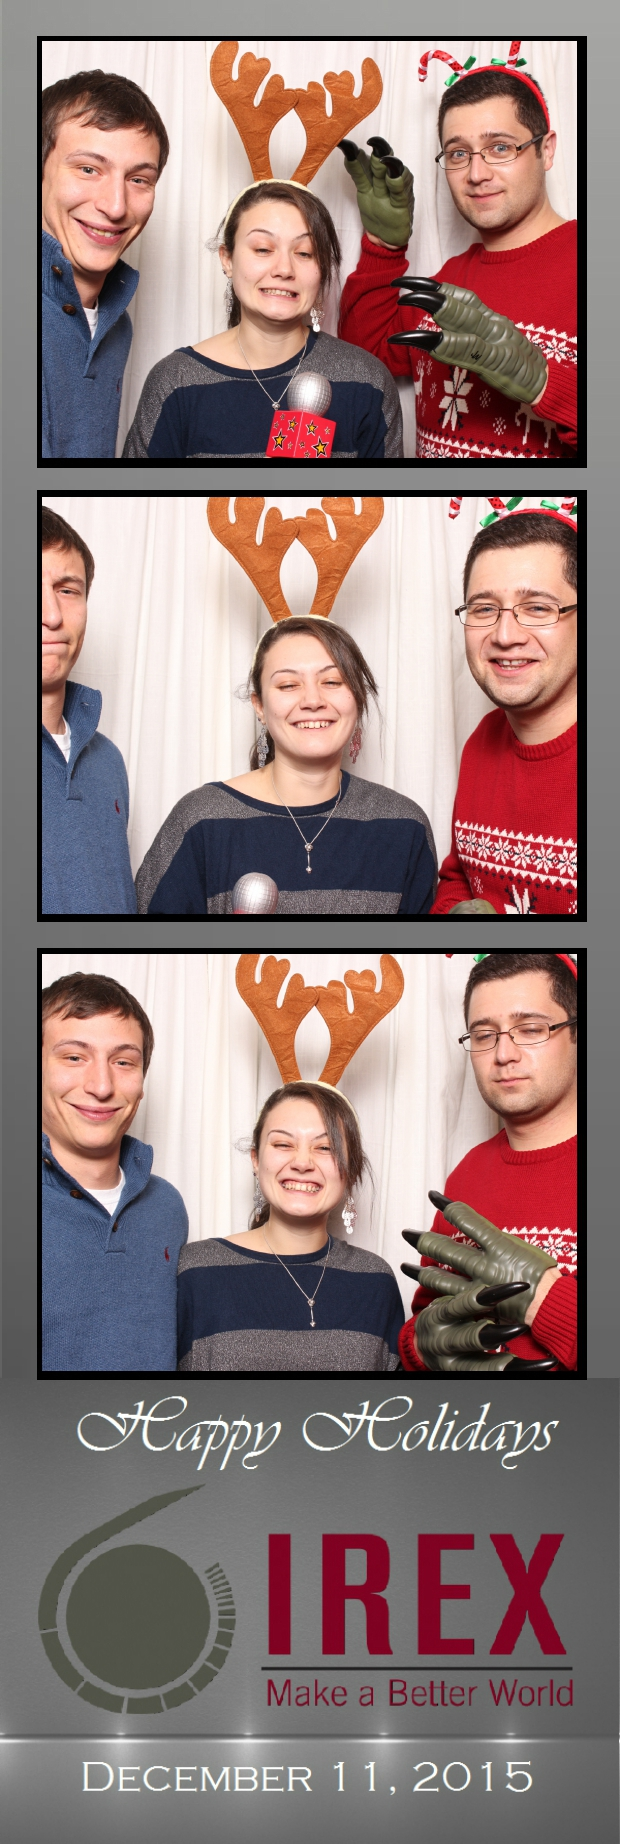 Guest House Events Photo Booth Strips IREX (57).jpg